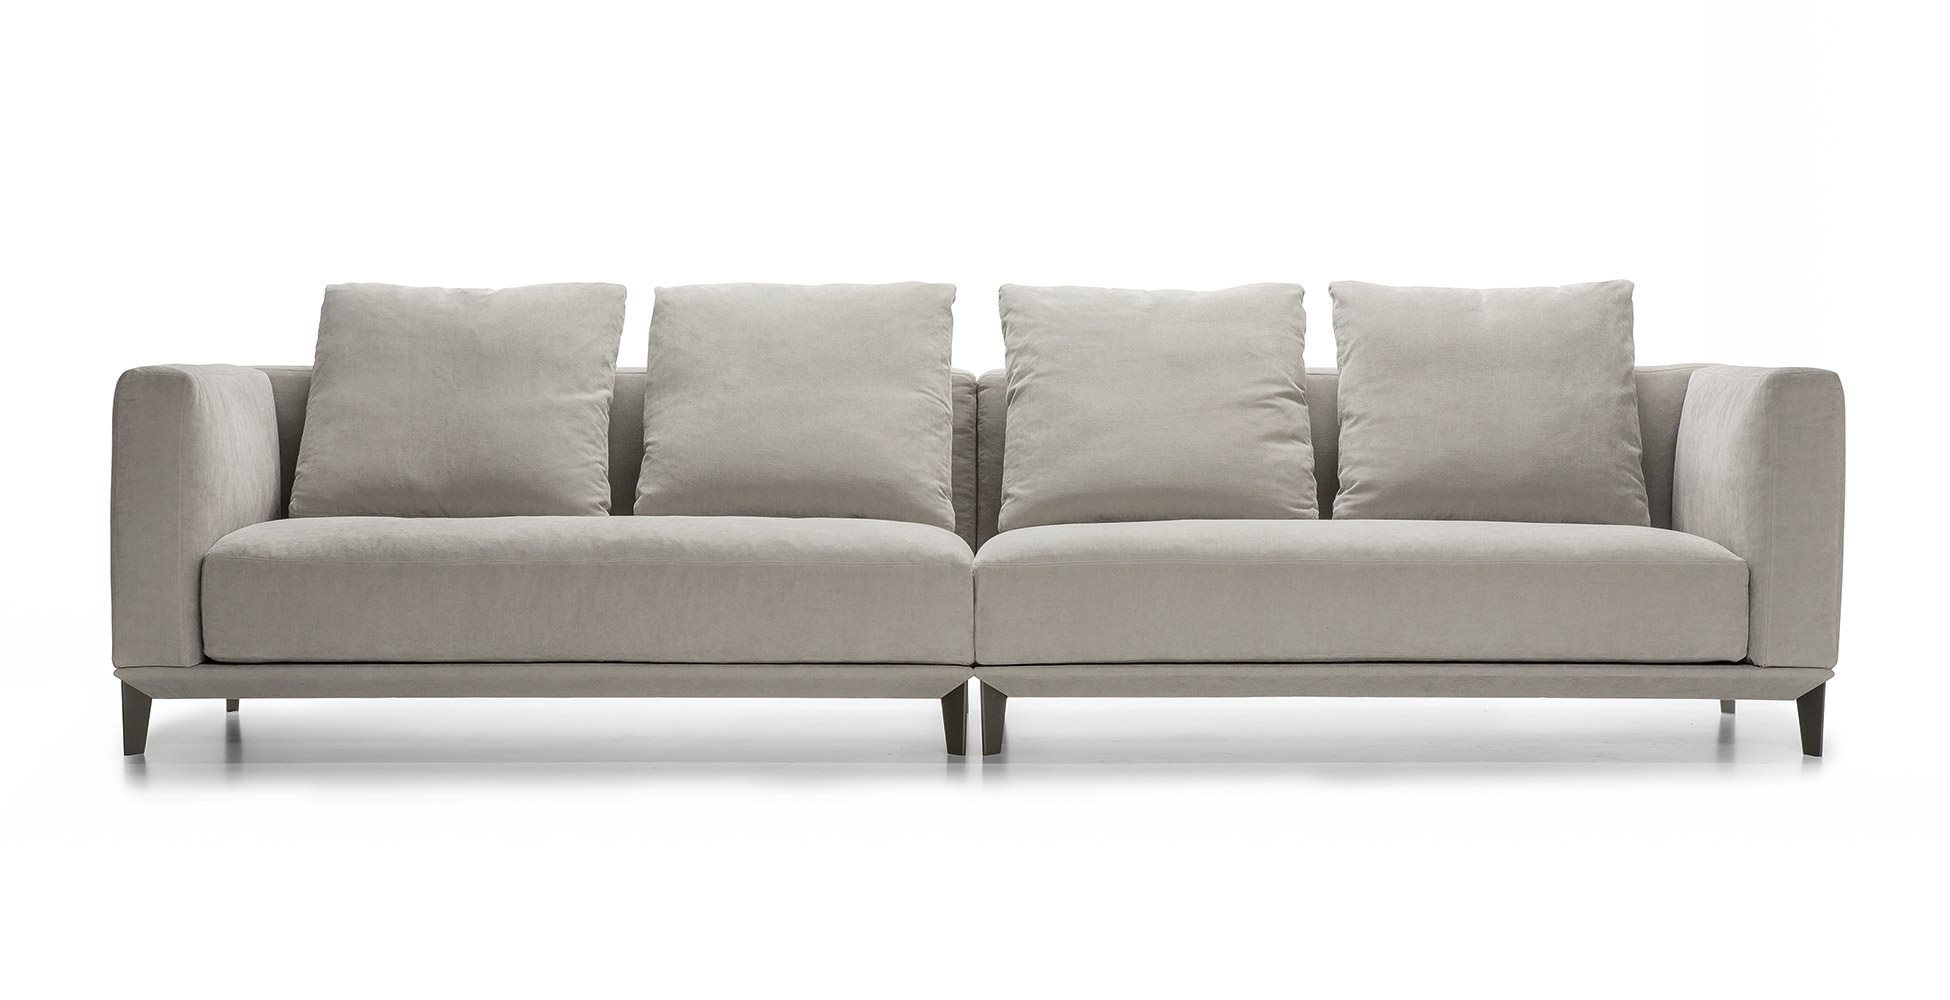 The Four Seater Sofa With Removable Cushions Dylan Alberta With Regard To Four Seat Sofas (Image 15 of 15)